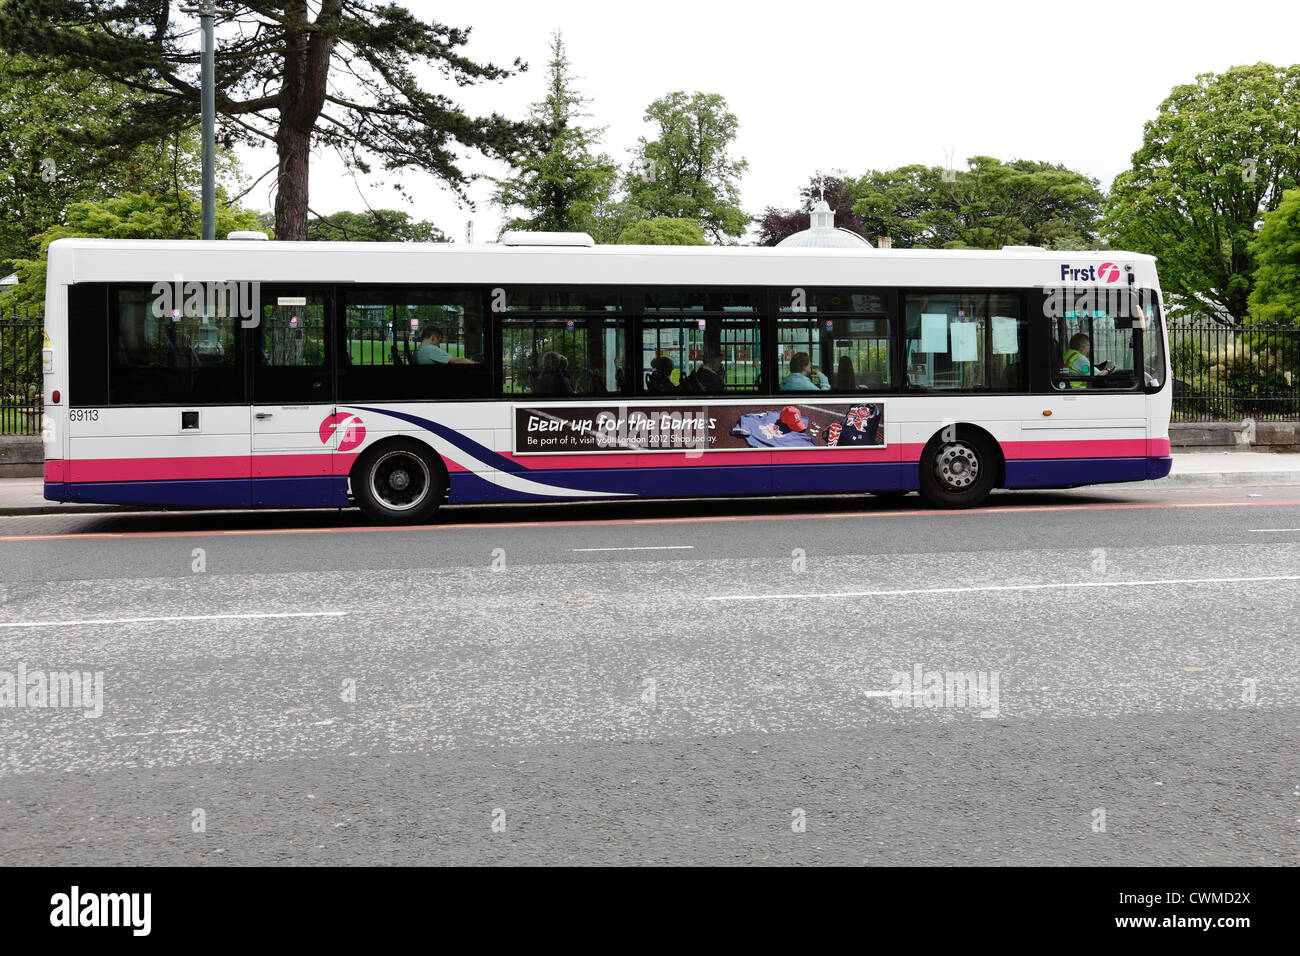 A bus operated by First Bus, Glasgow, Scotland, UK Stock Photo